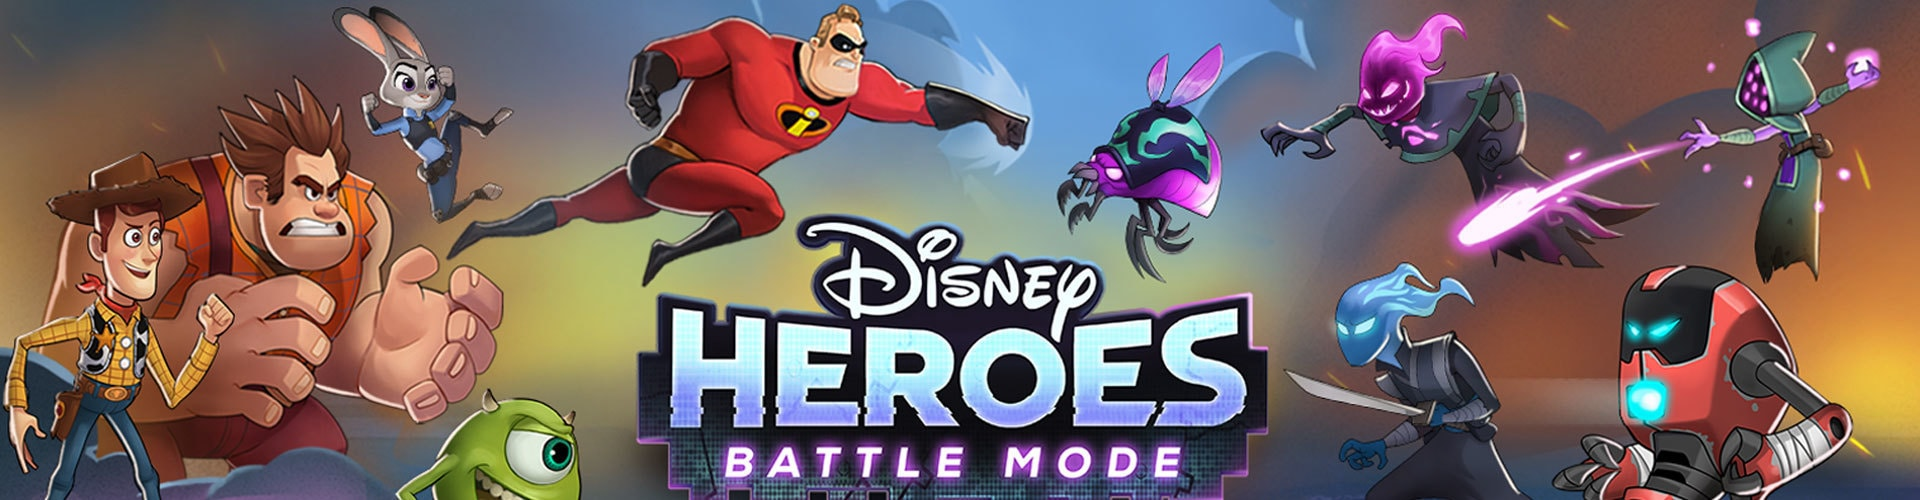 Disney Heroes Battle Mode | Apps | Disney | Lifestyle